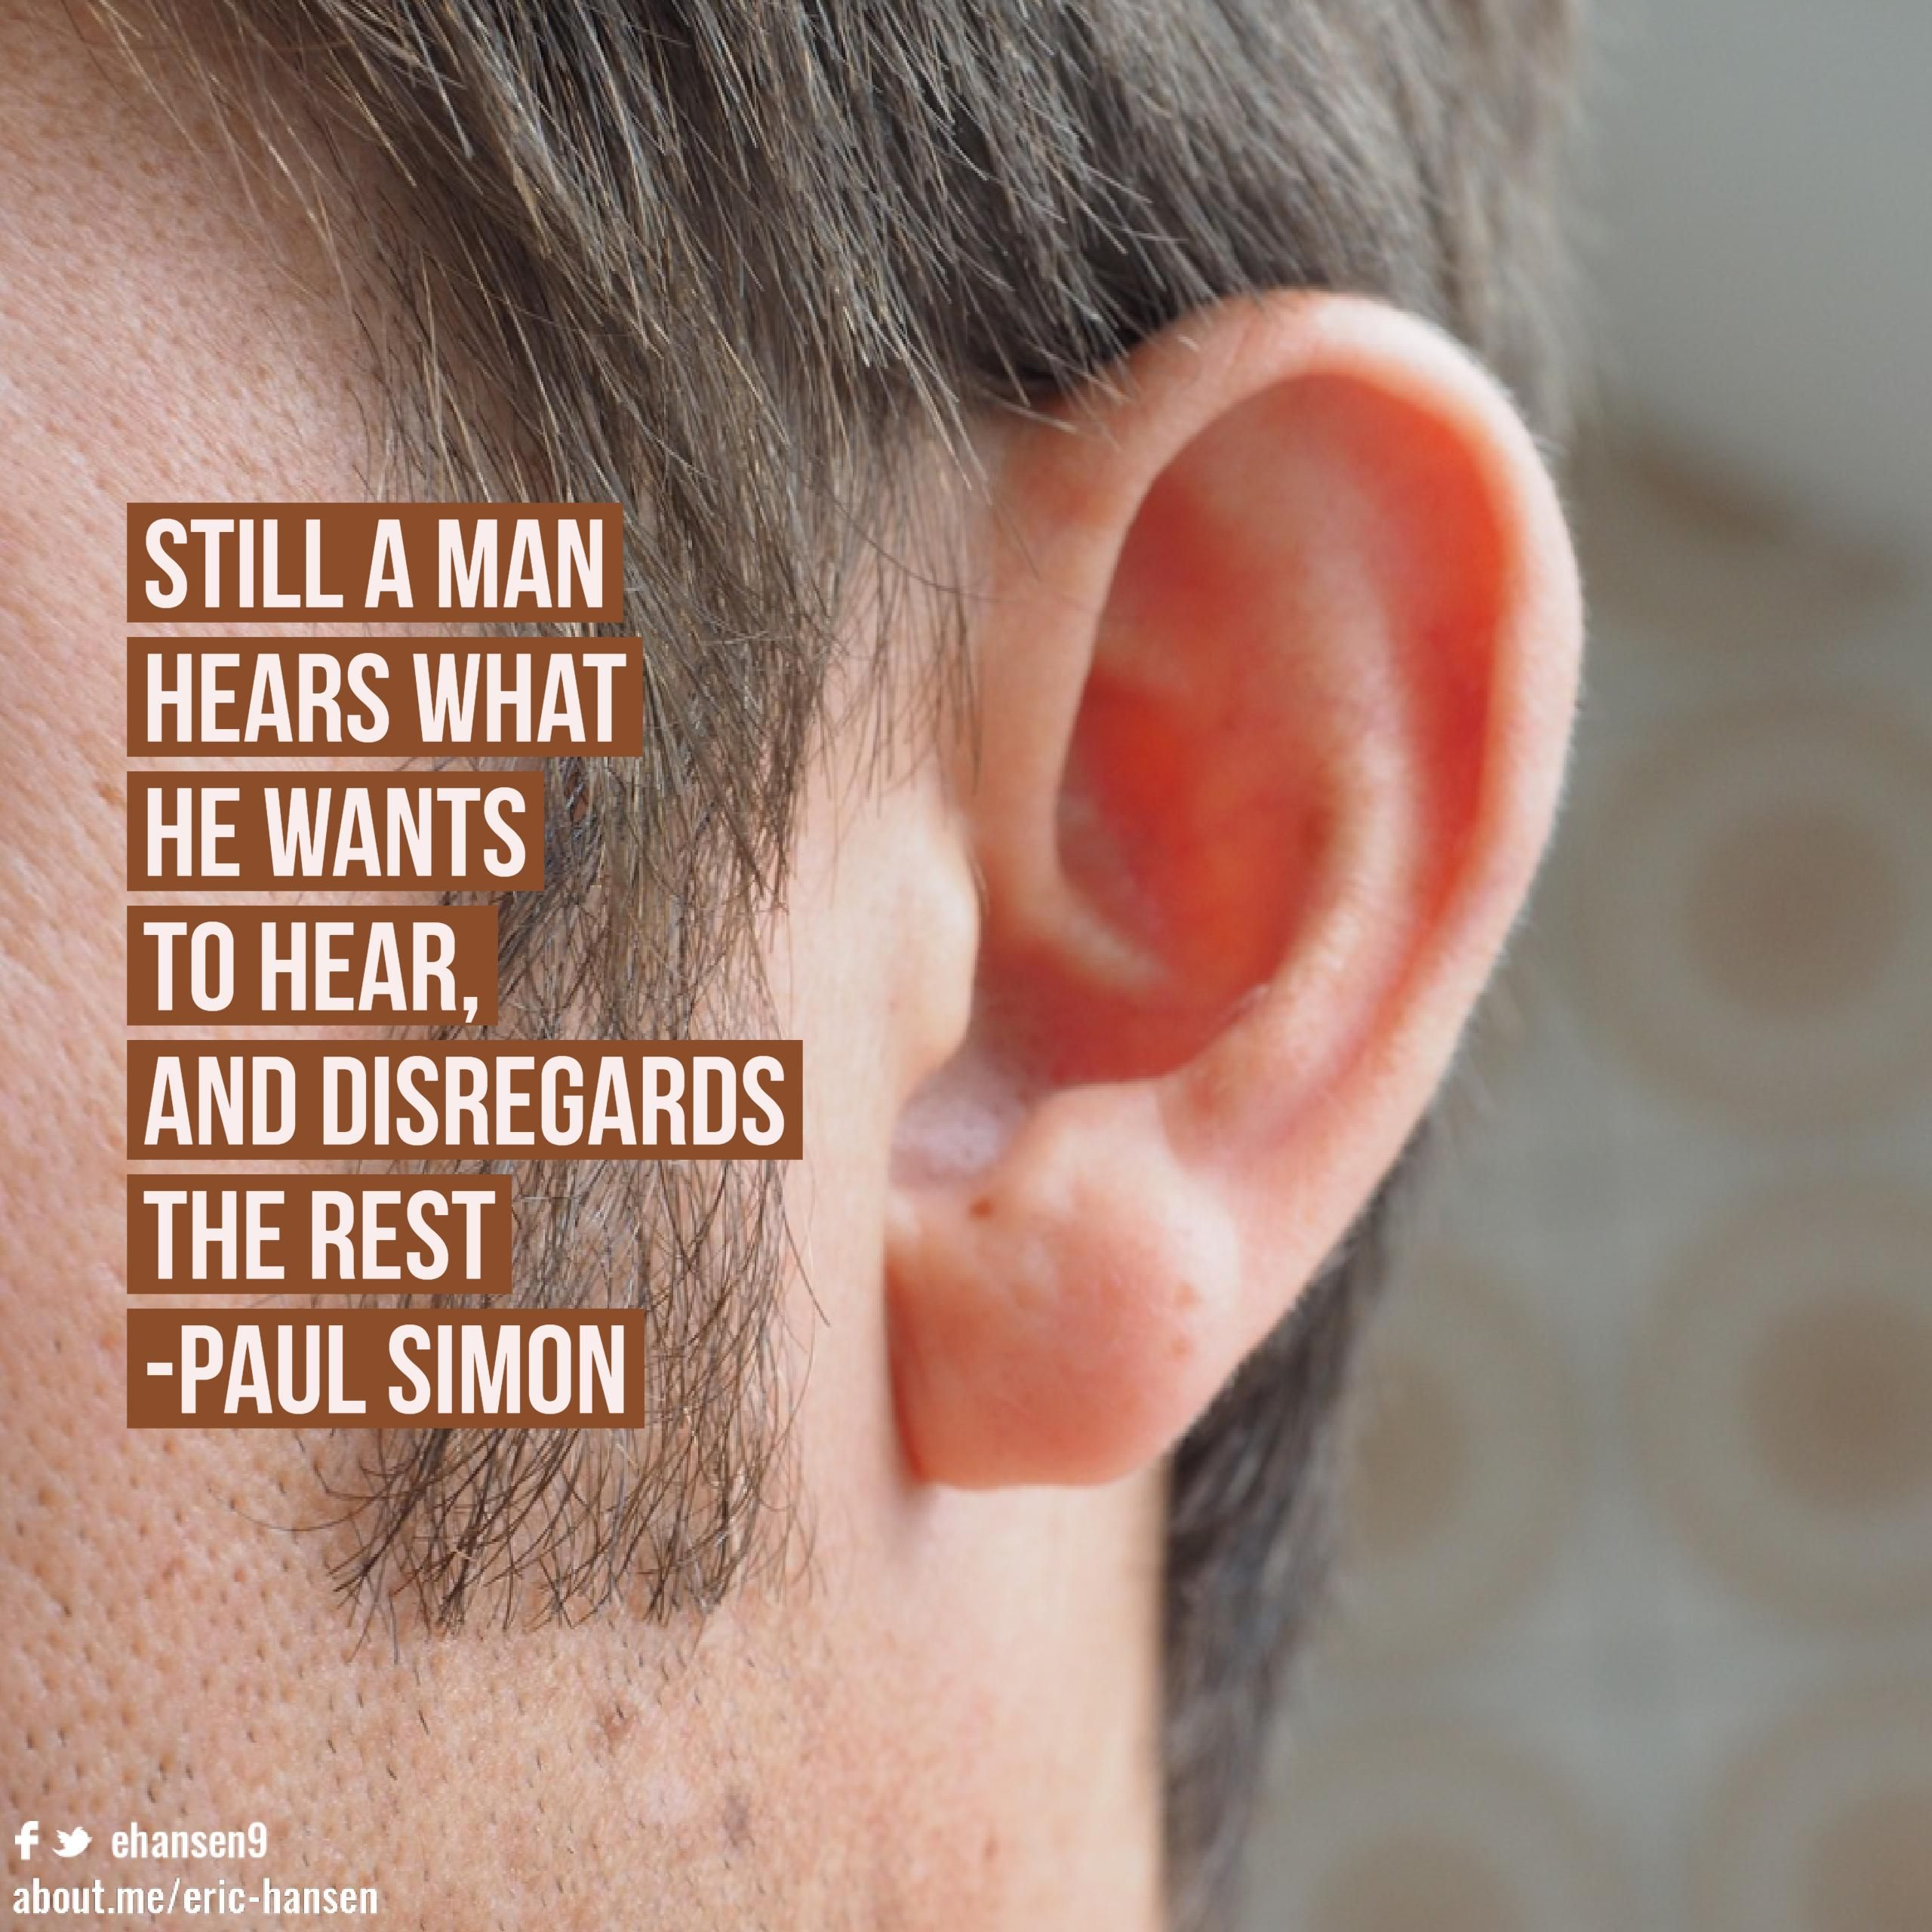 Still a man hears what he wants to hear, and disregards